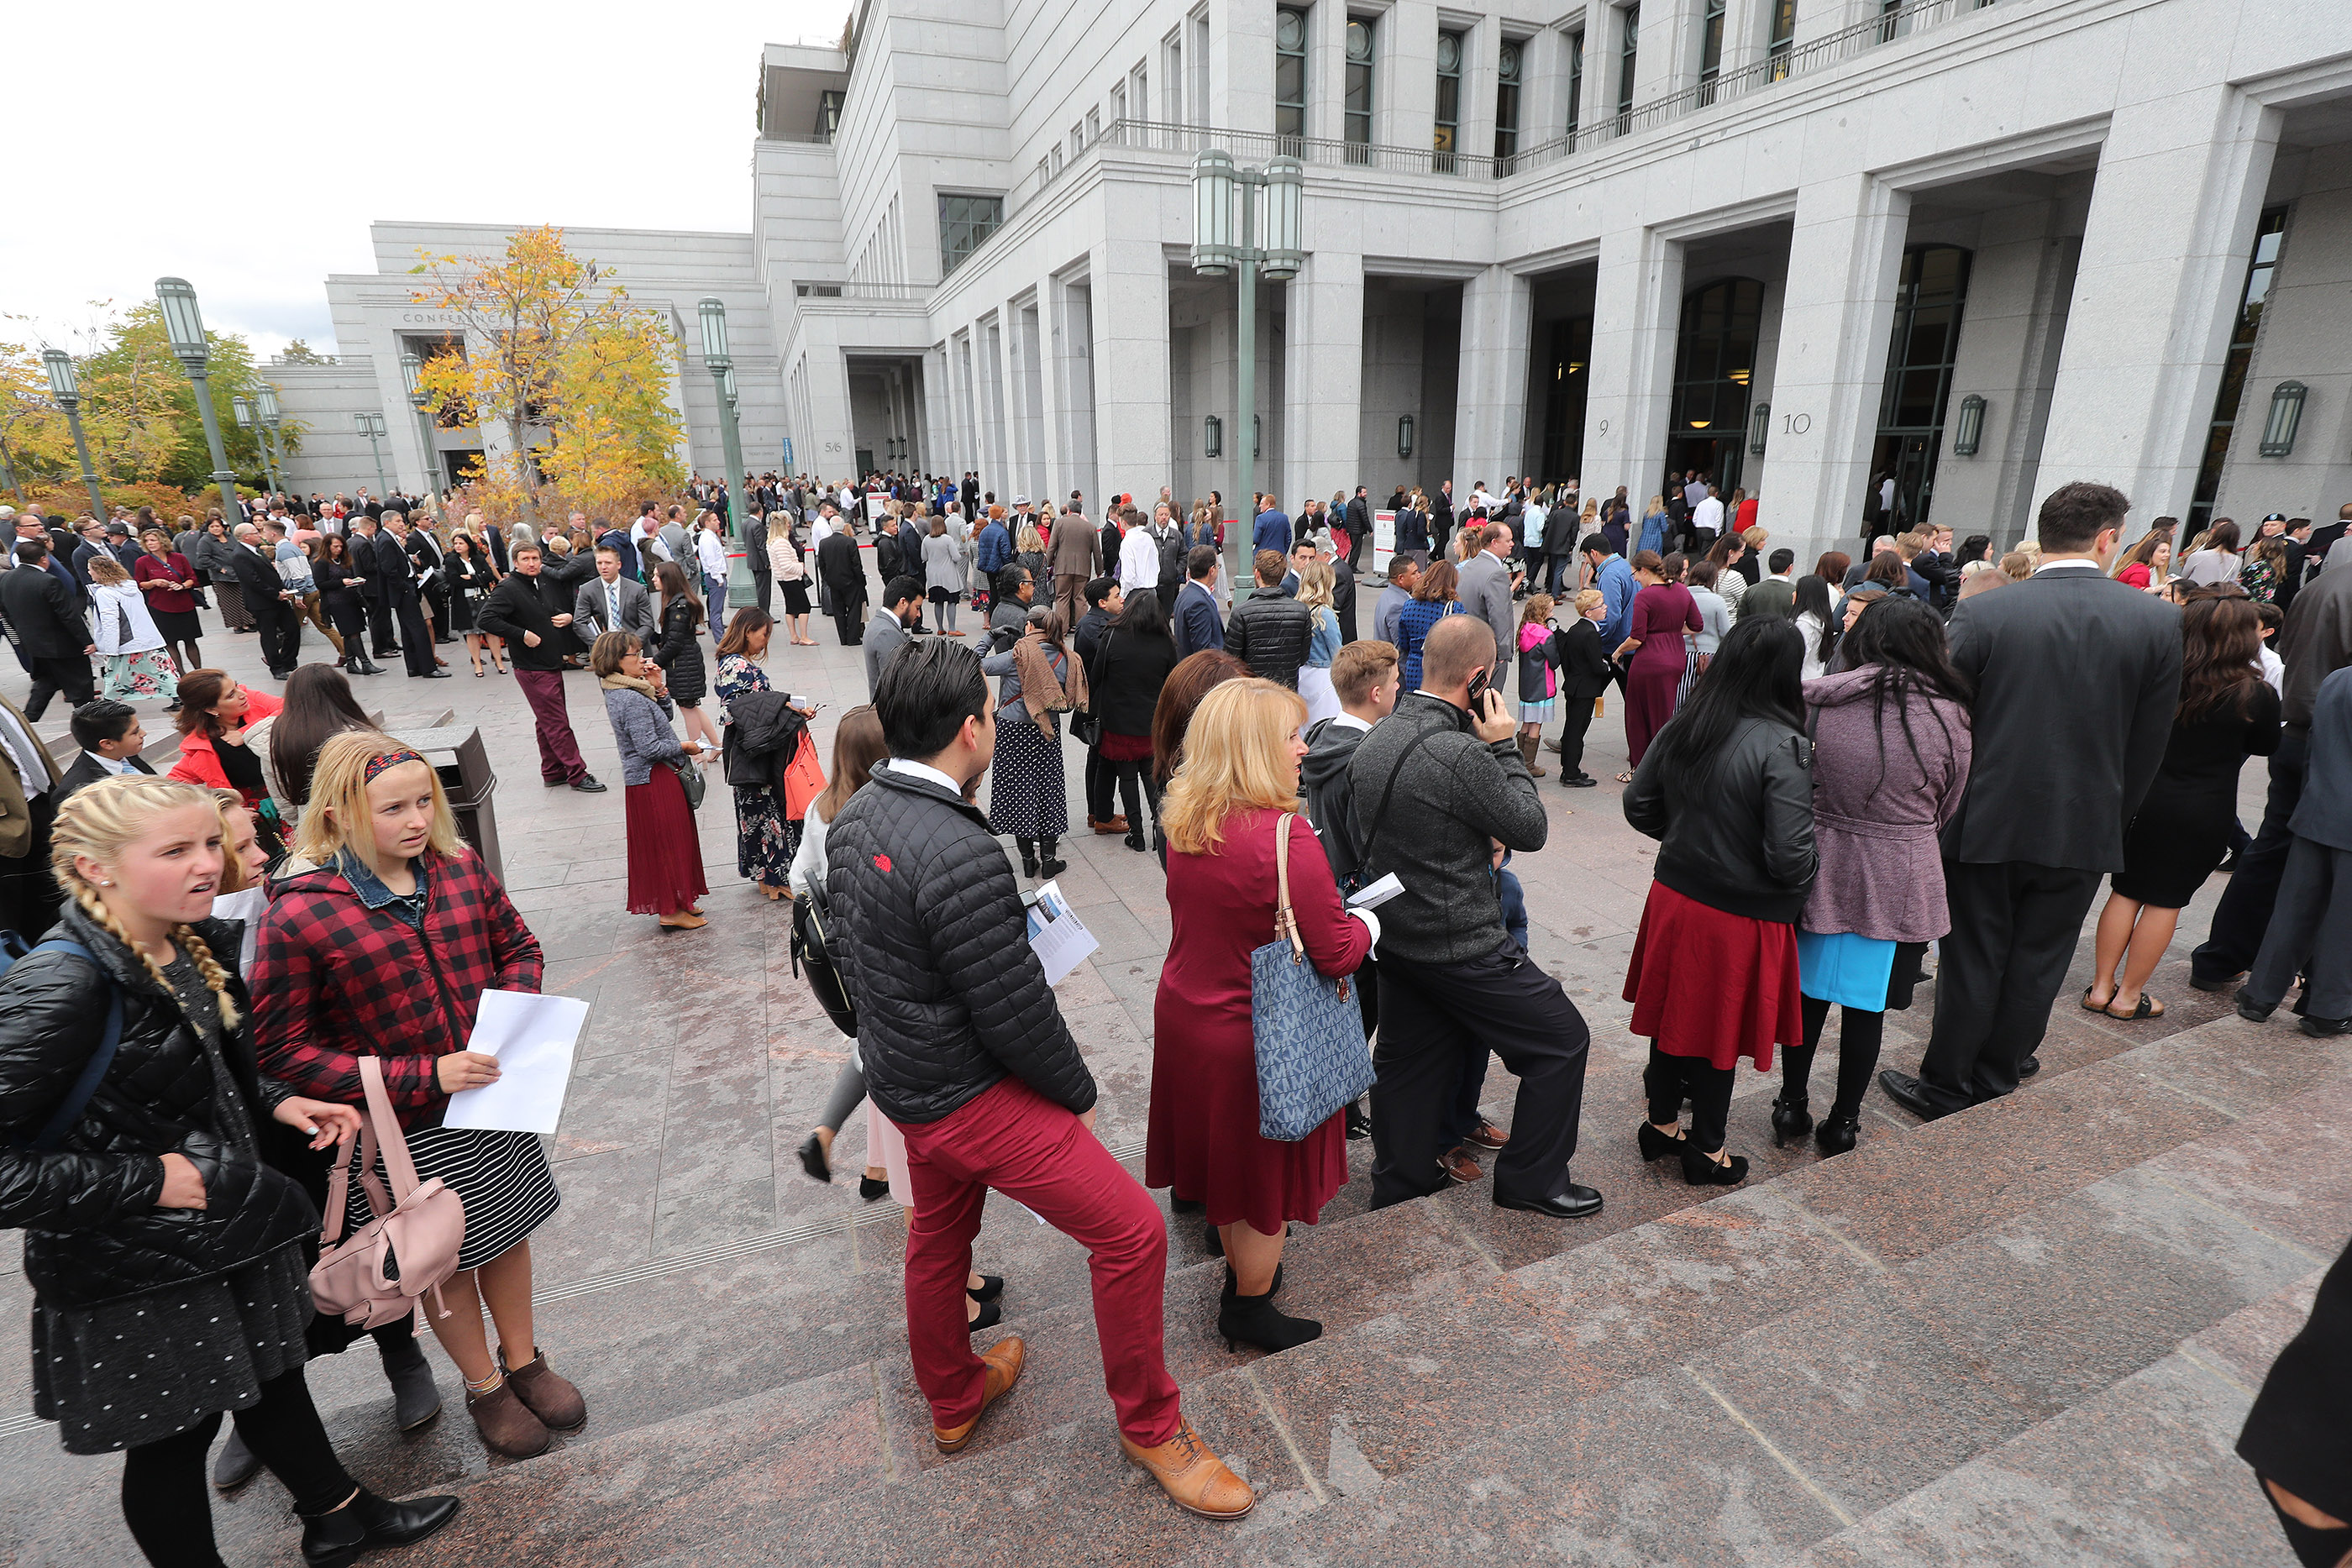 Attendees stand in line for the 188th Semiannual General Conference of The Church of Jesus Christ of Latter-day Saints in Salt Lake City on Sunday, Oct. 7, 2018.